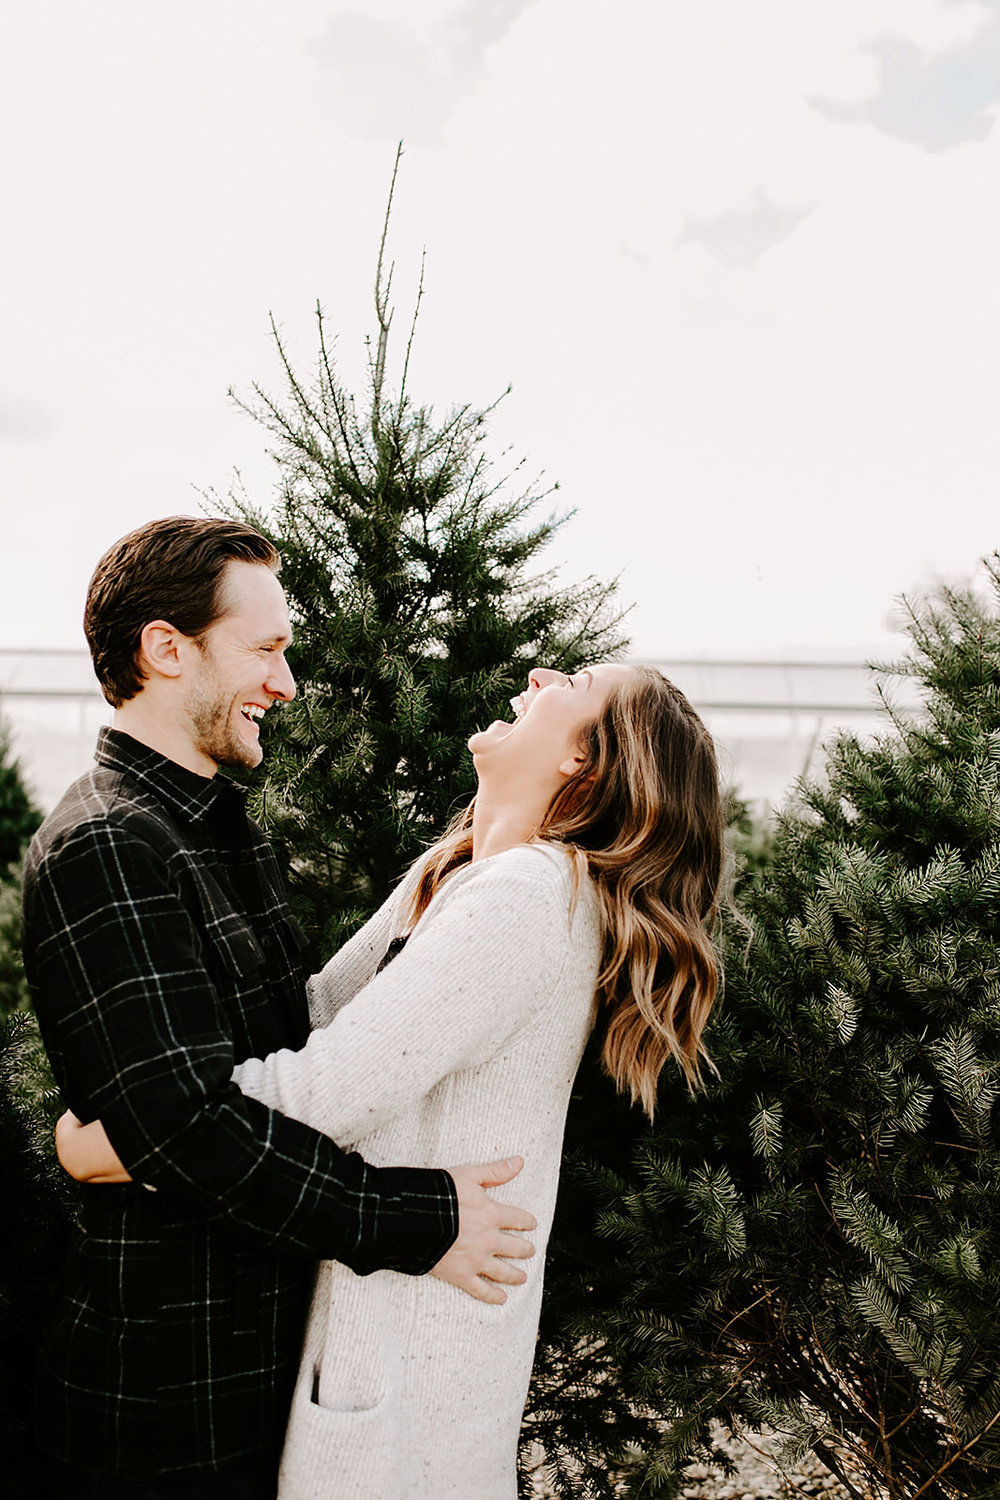 Urban Noblesville, Indiana Engagement Session with Alex and Andy by Emily Elyse Wehner Photography | Posing inspiration | Couples session outfit inspiration | Urban engagement